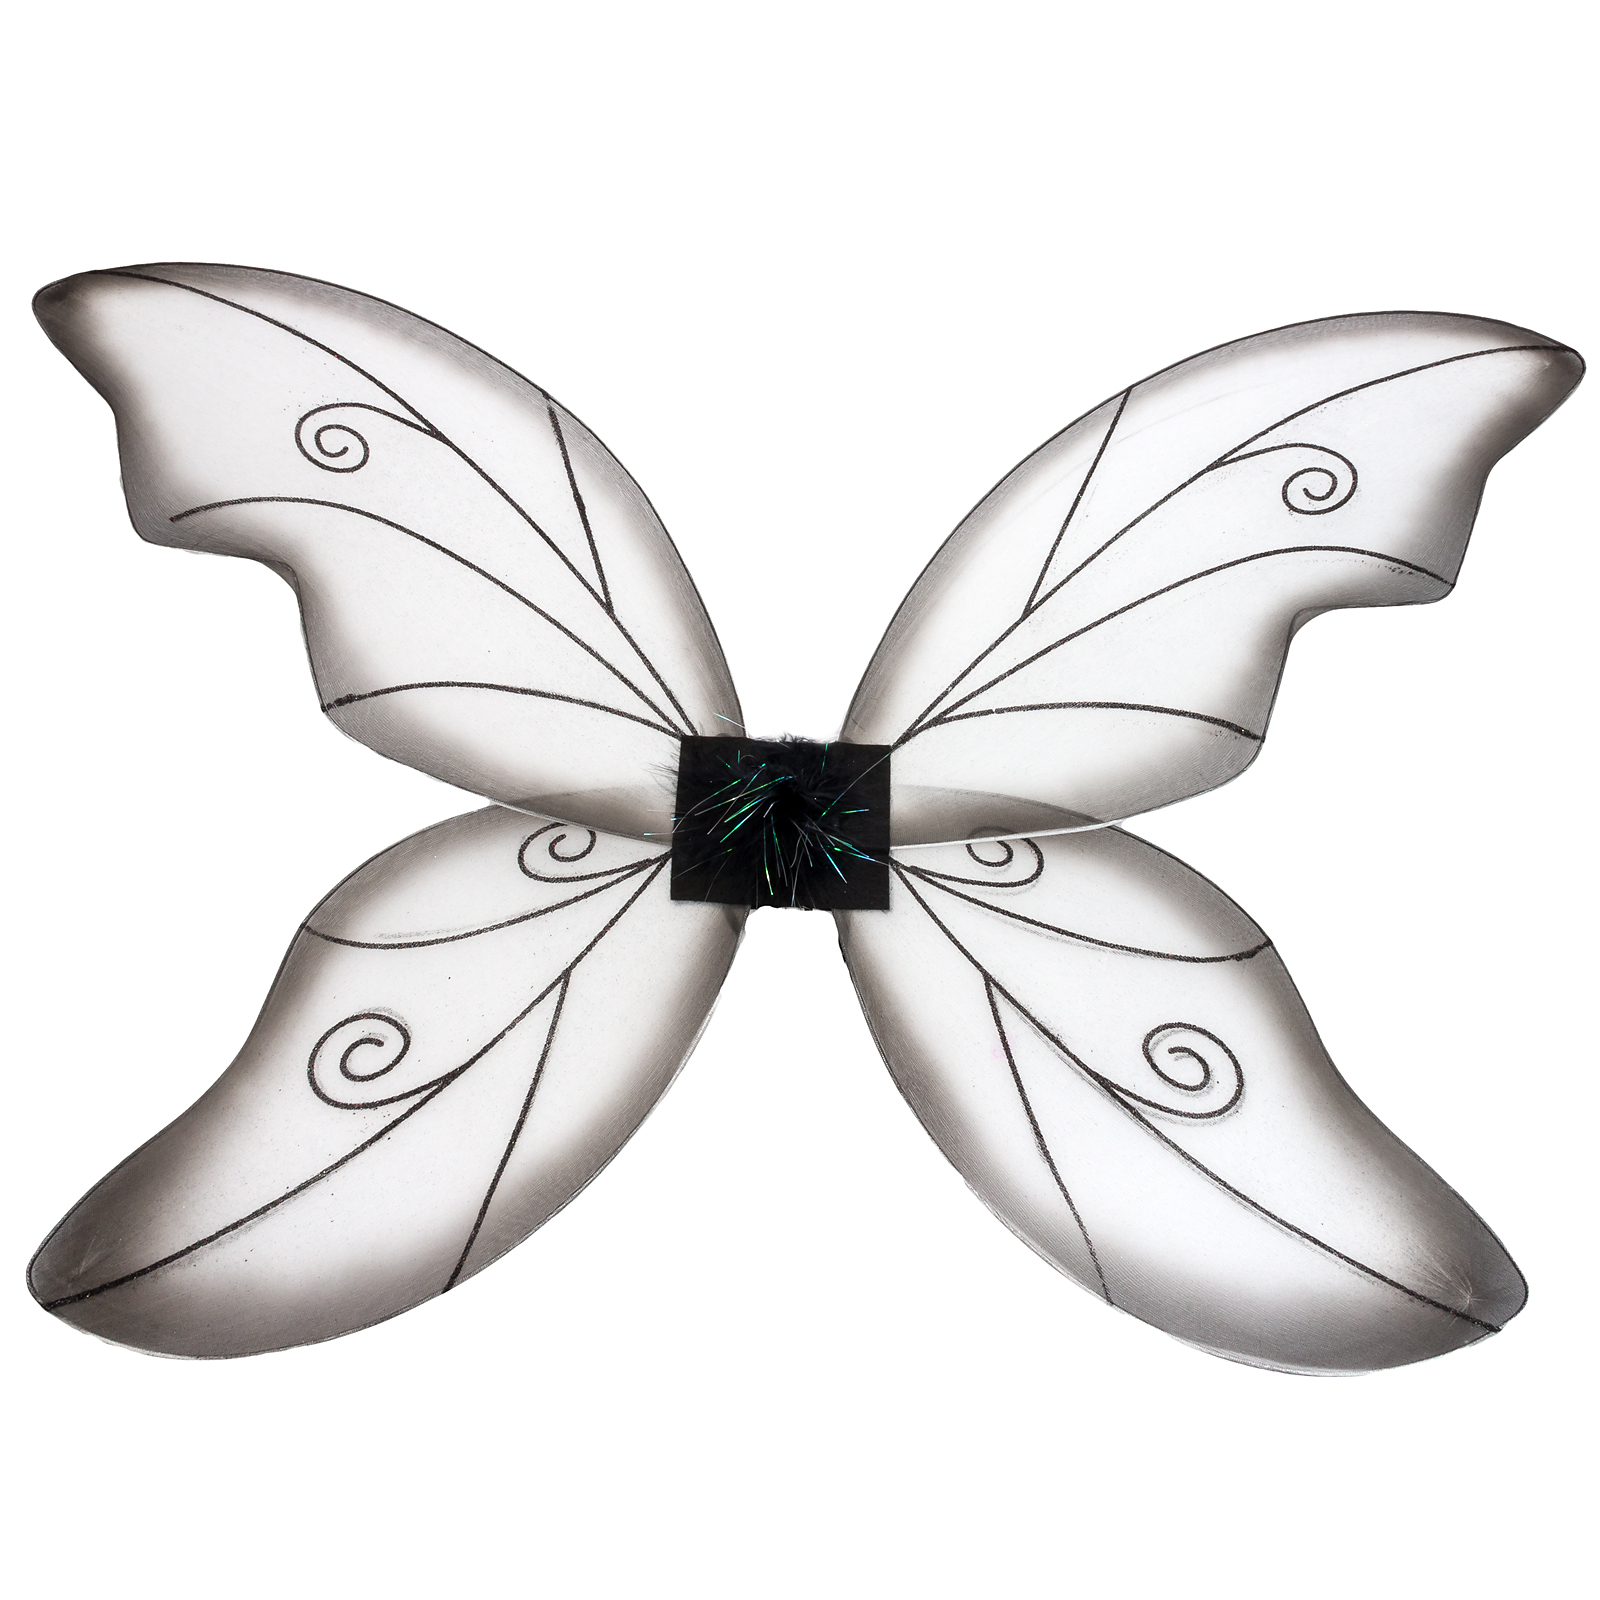 Women's Wild Fairy Nylon Wings Halloween Party Dance Costume Accessory NEW